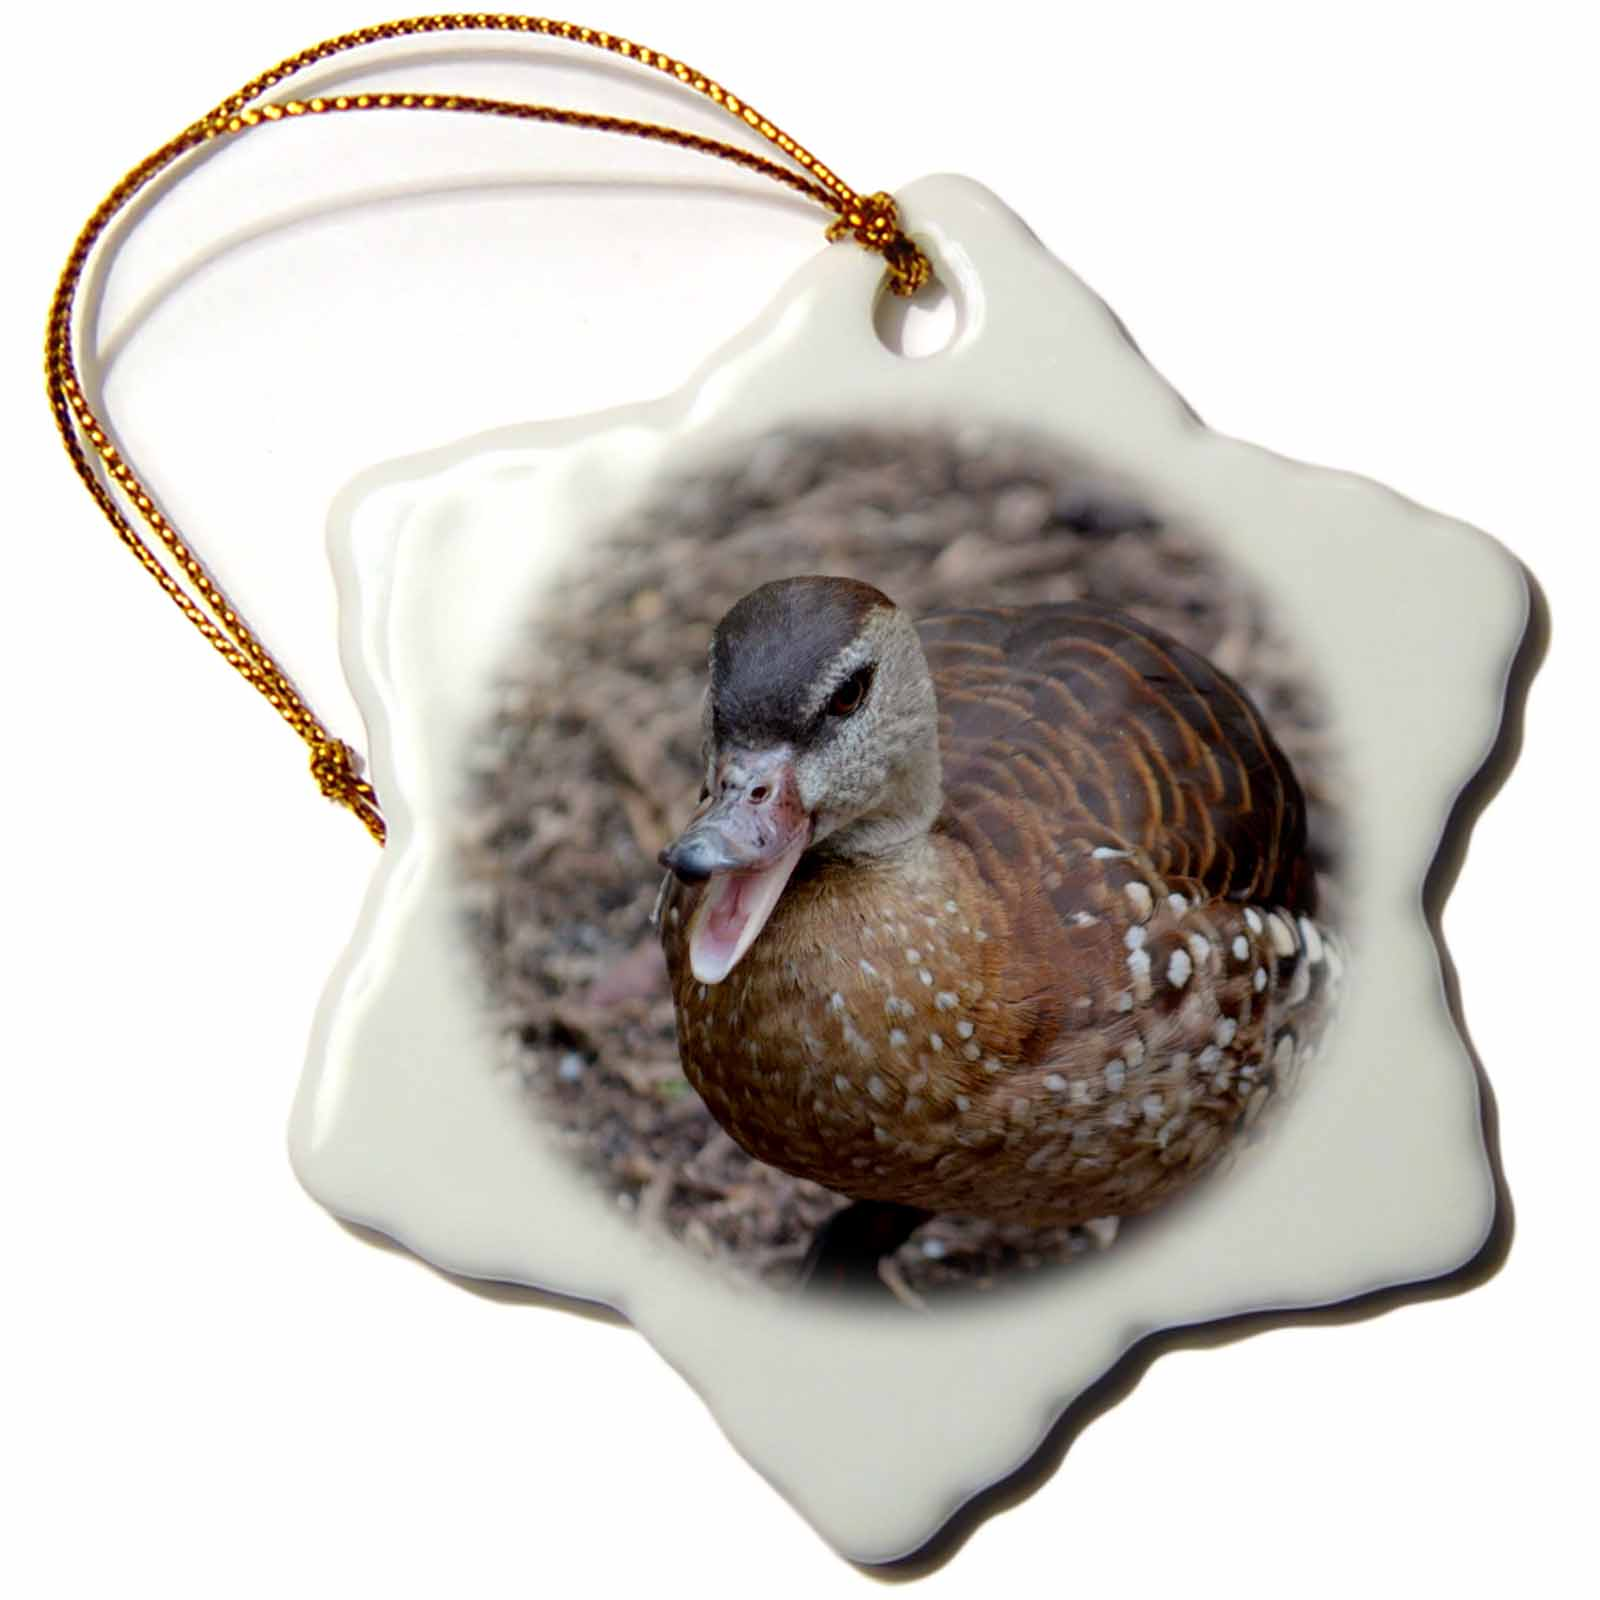 3dRose brown duck quacking at camera, Snowflake Ornament, Porcelain, 3-inch